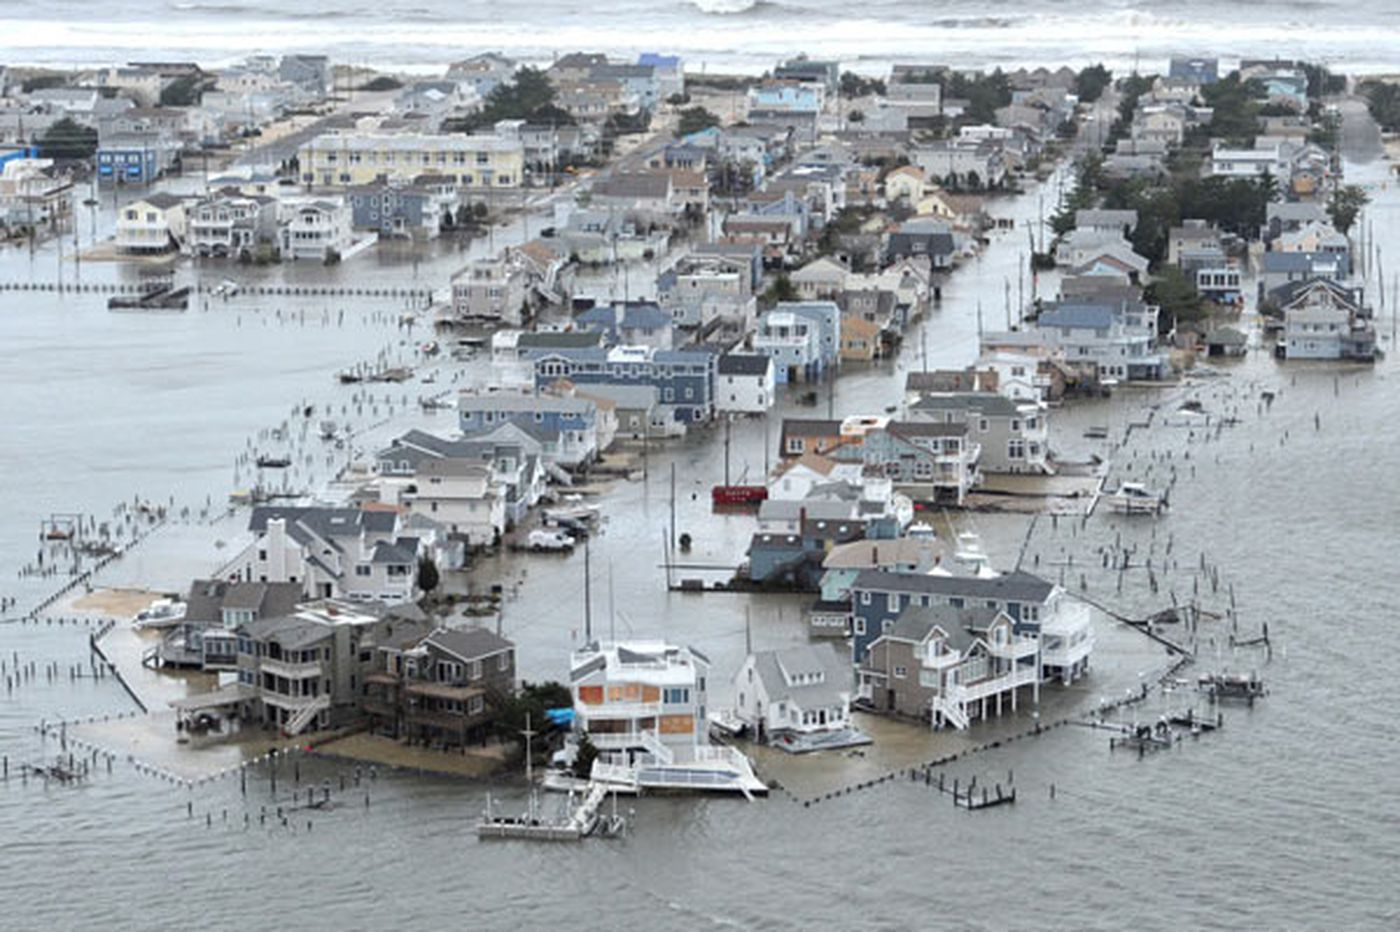 New year will bring new pressures to Sandy victims